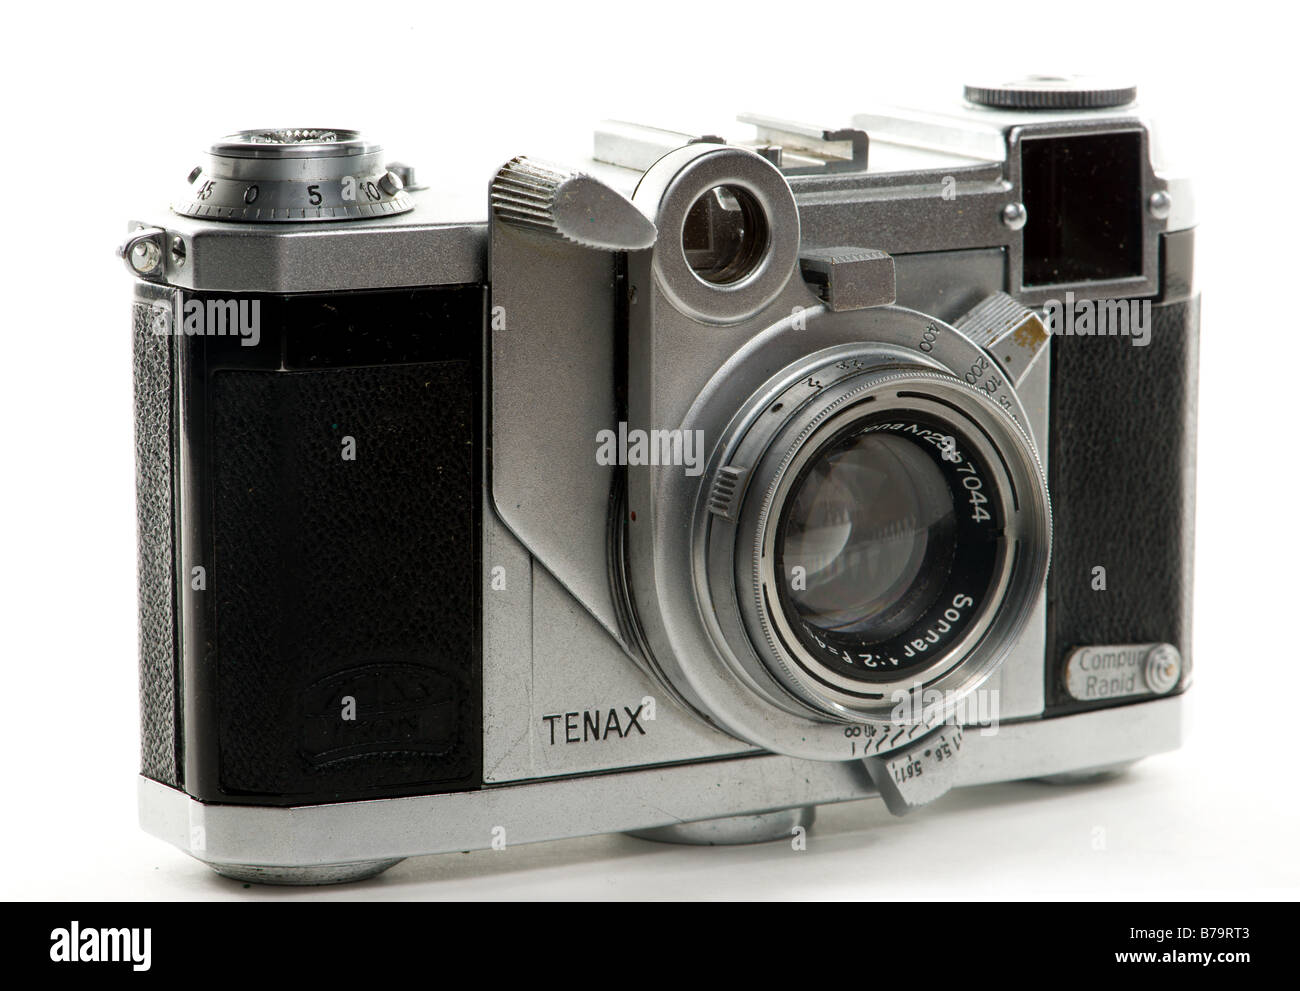 Tenax II rangefinder camera from the late 1930s made by Zeiss - Stock Image